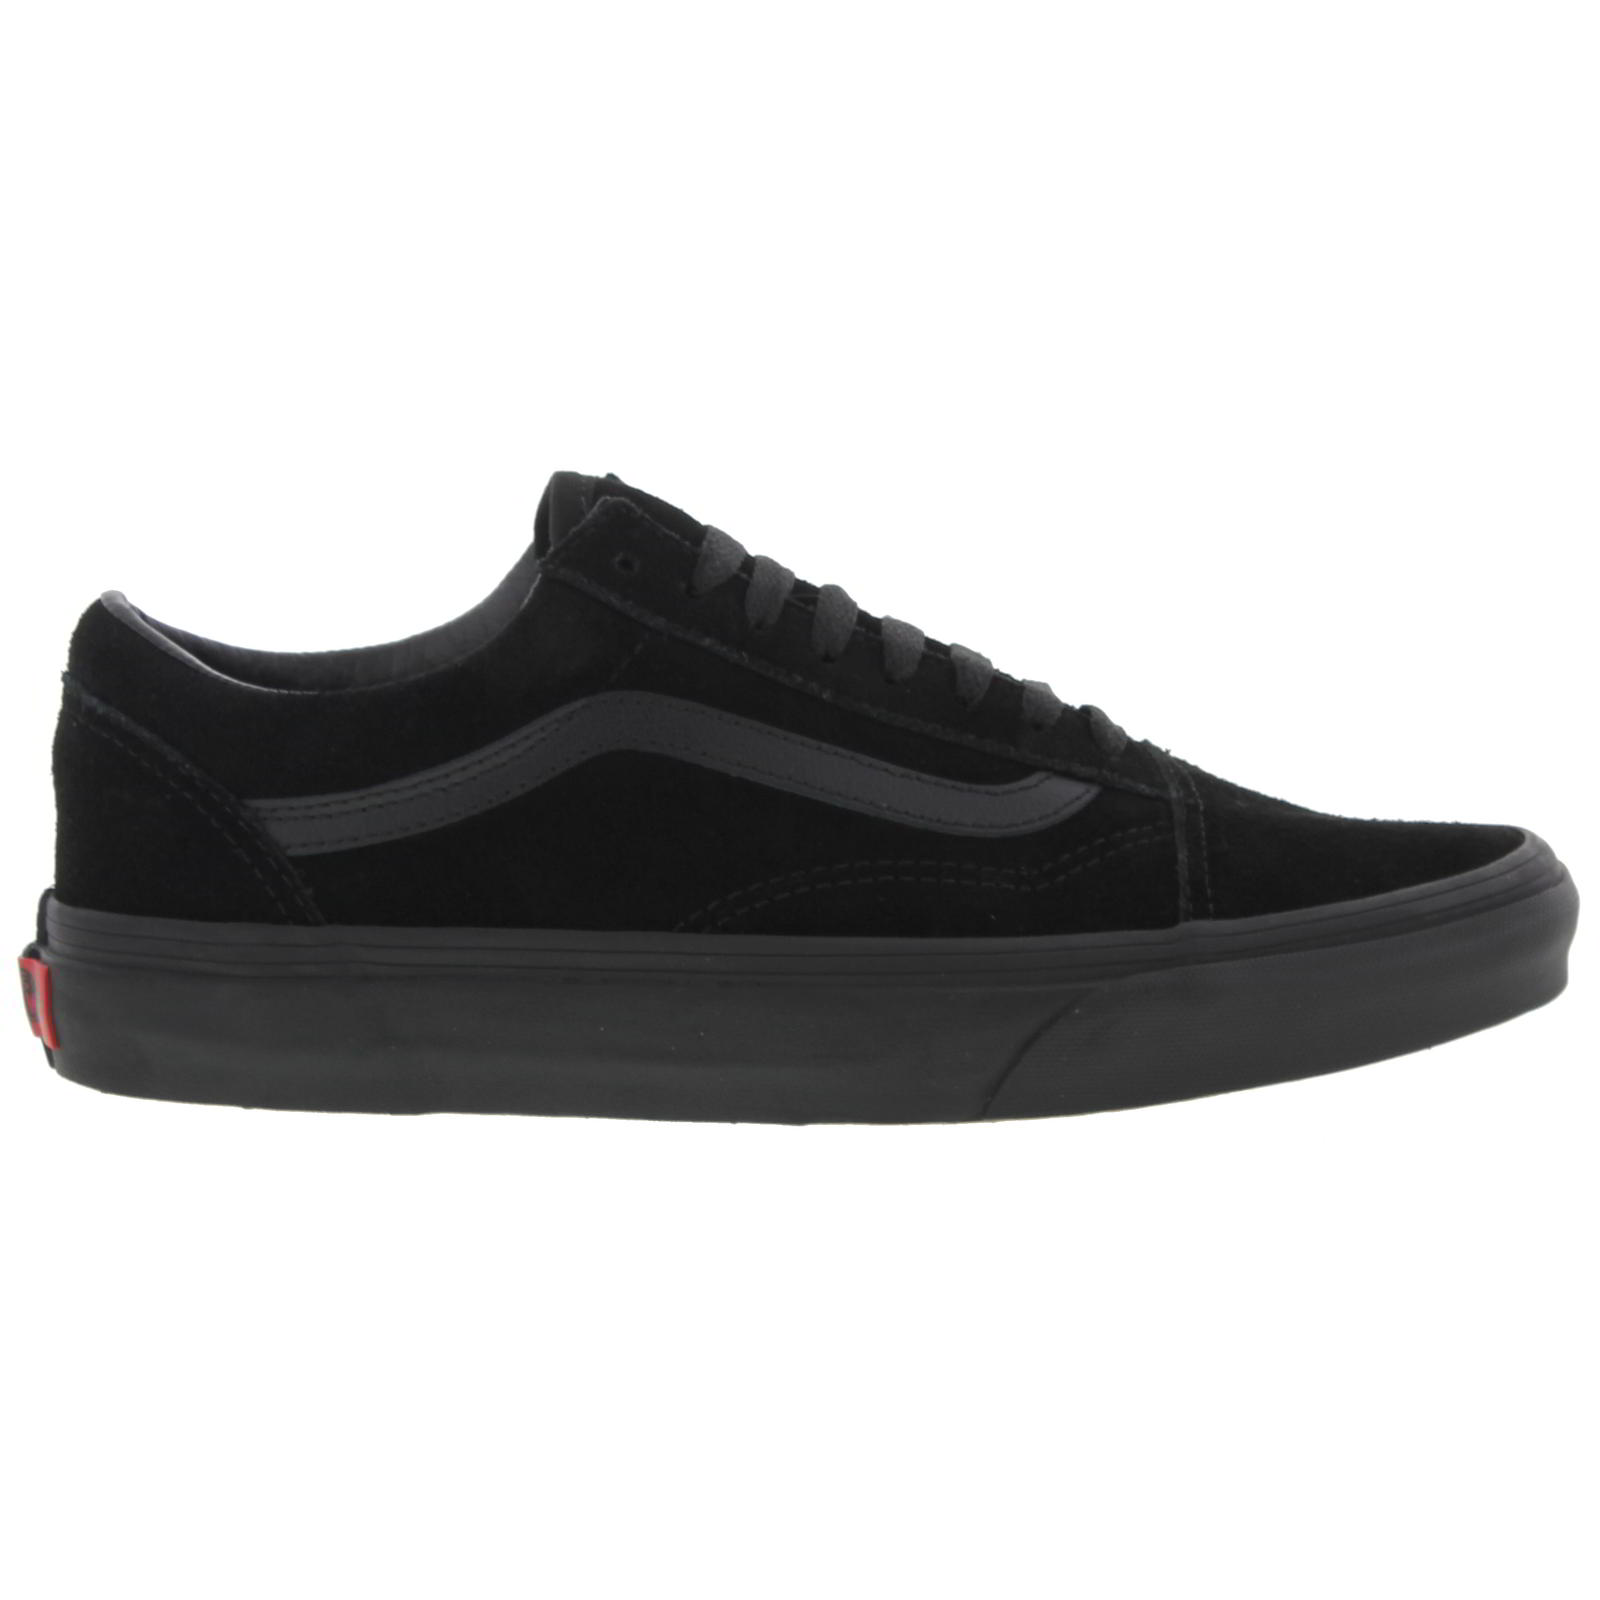 Details about Vans Old Skool Mens Womens All Black Suede Leather Trainers  Size UK 4-11 50ac63237